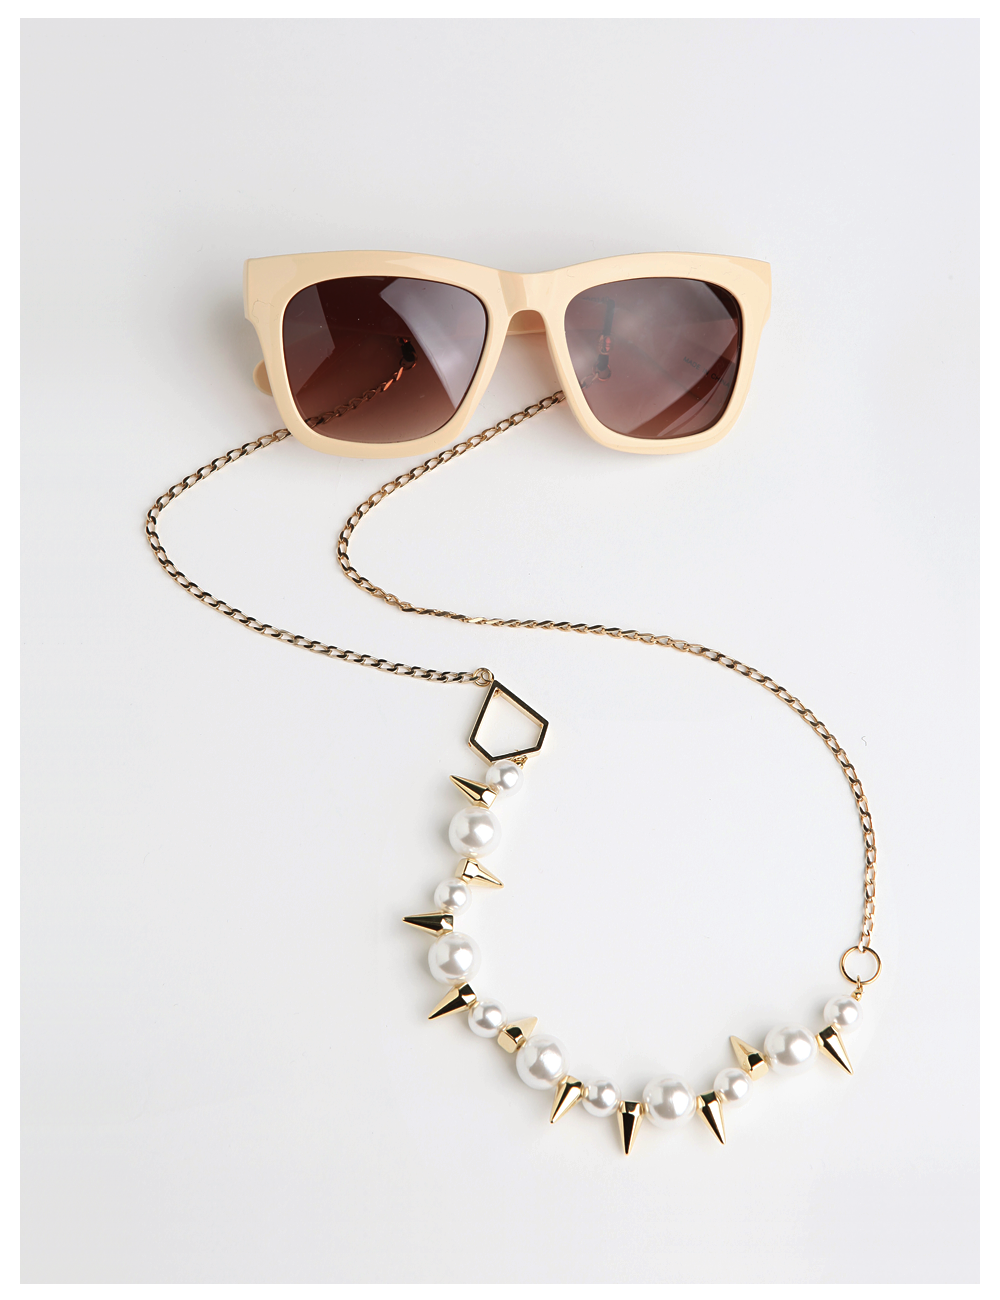 ELLEBENE WHITE_EYE GLASS CHAIN